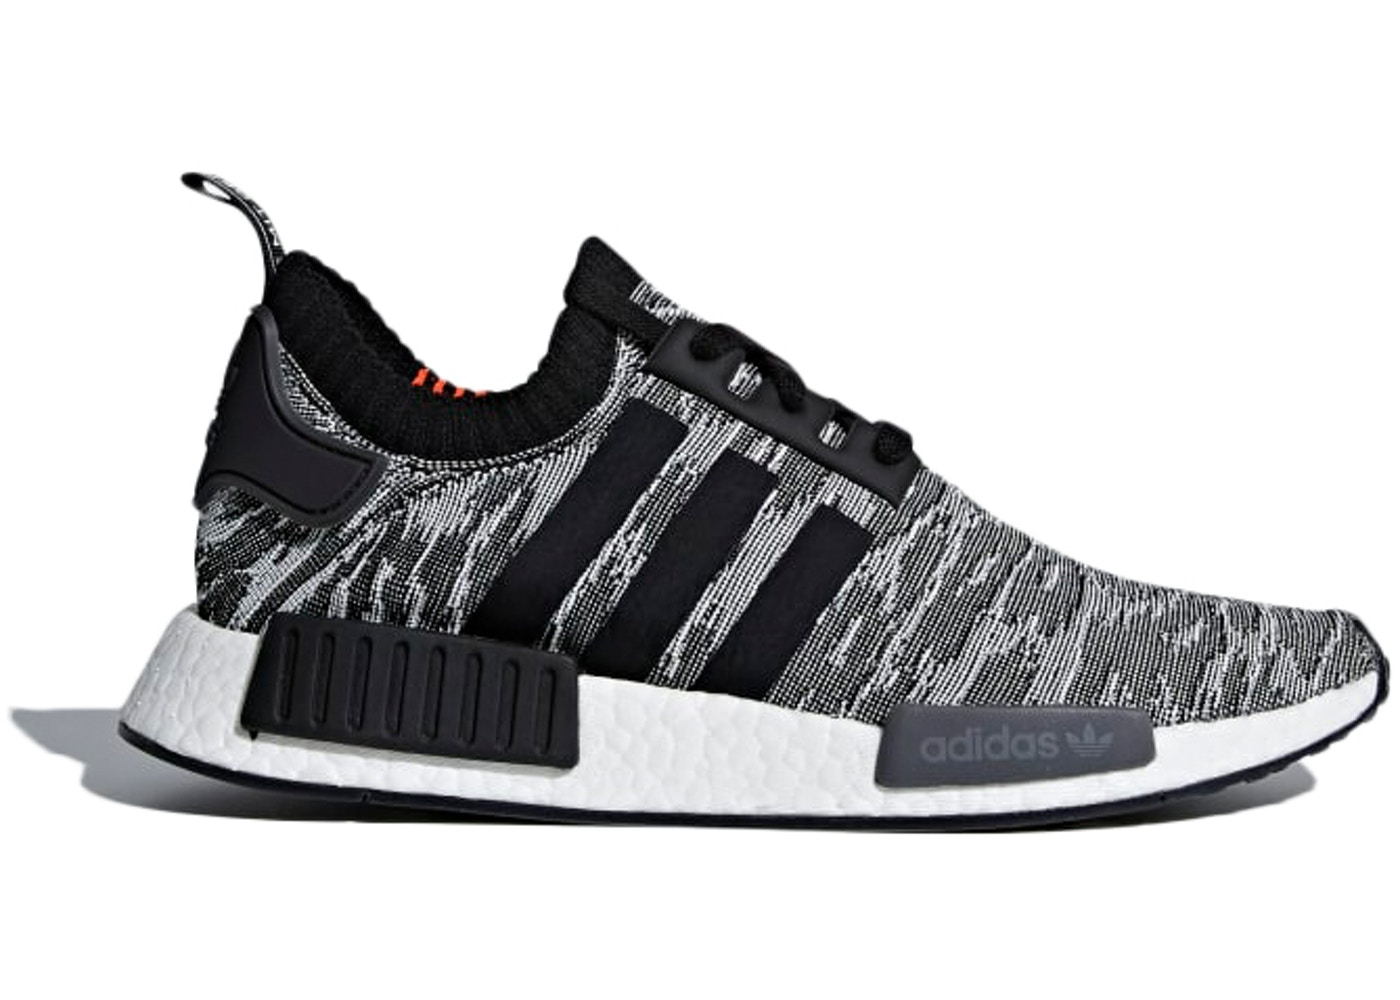 b26e4b62901ba Sell. or Ask. Size: 12. View All Bids. adidas NMD R1 Black Glitch